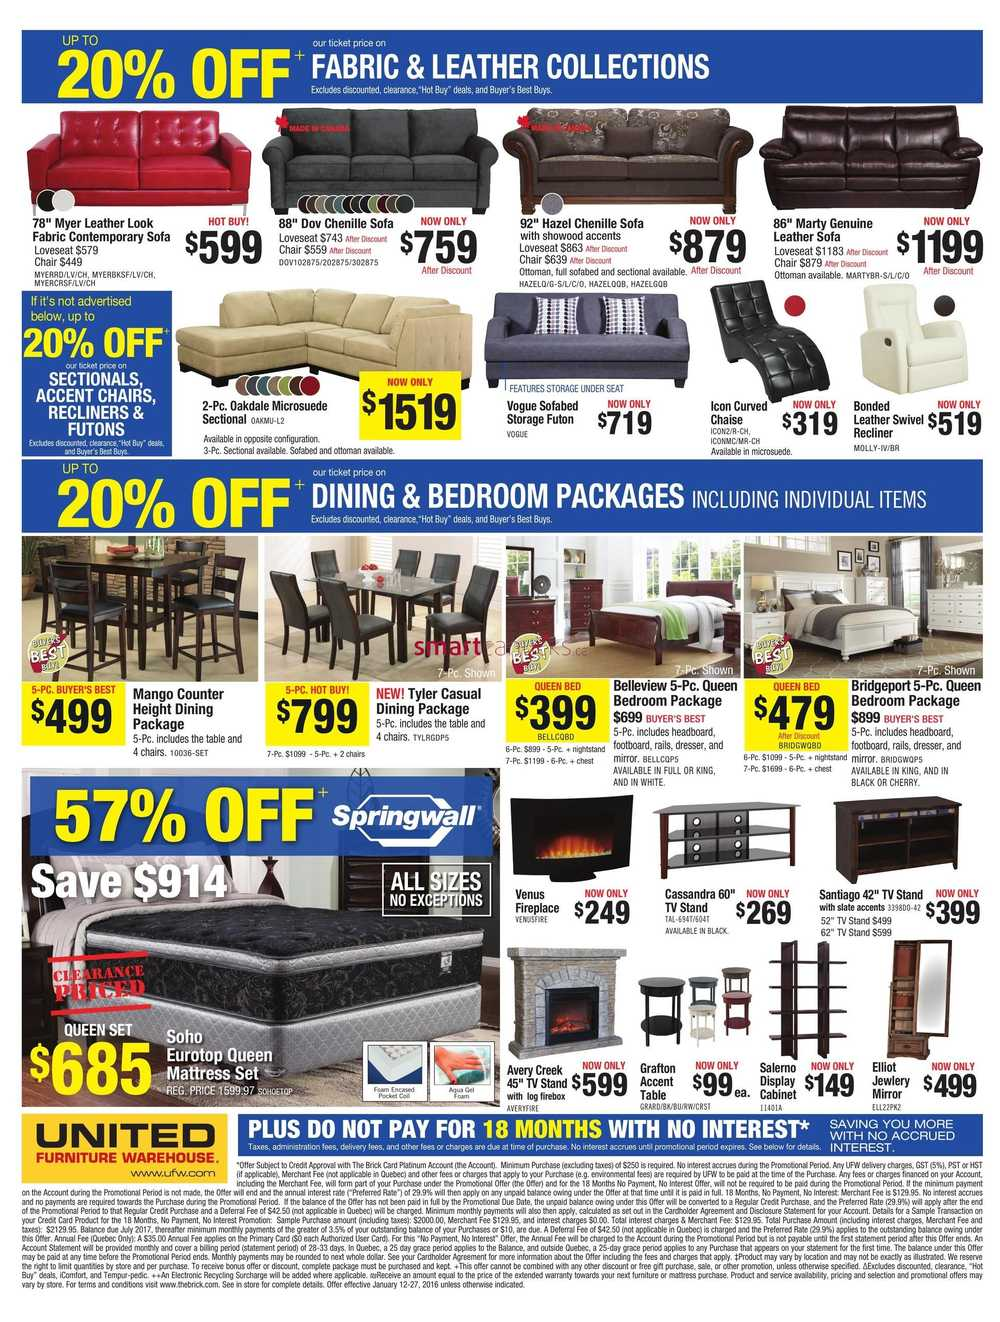 United Furniture Warehouse Flyer January 12 To 27